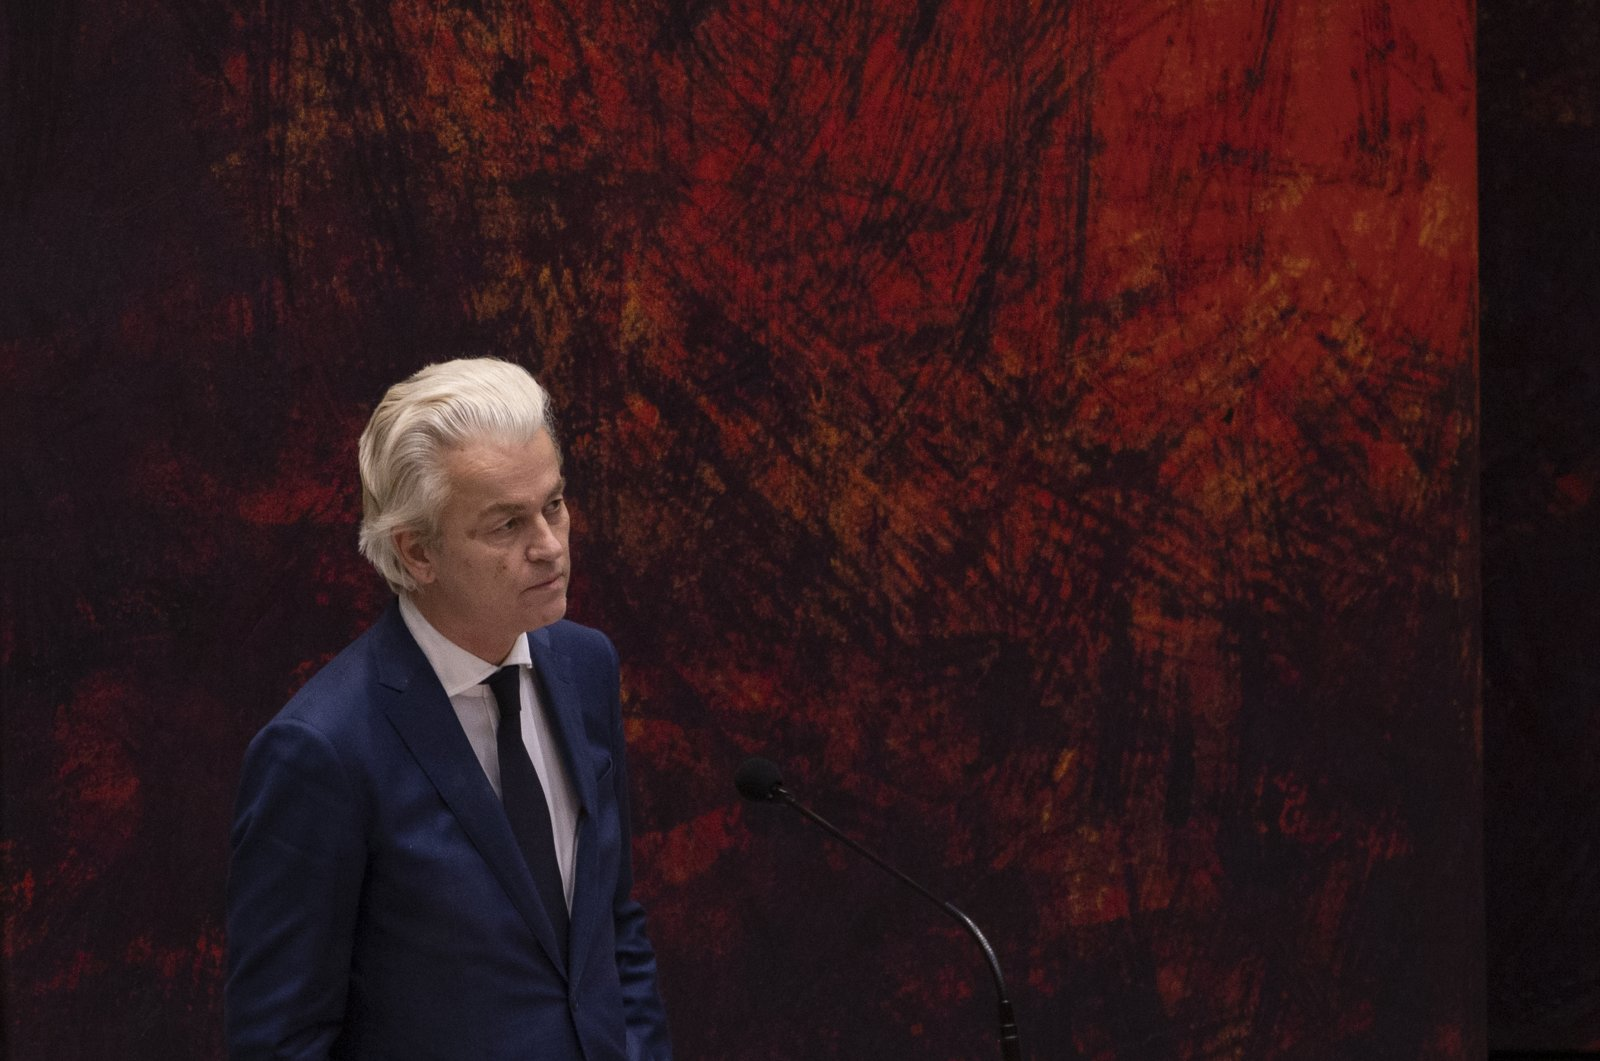 Far-right Dutch lawmaker Geert Wilders reacts during a debate in parliament in The Hague, Netherlands, April 2, 2021. (AP Photo)